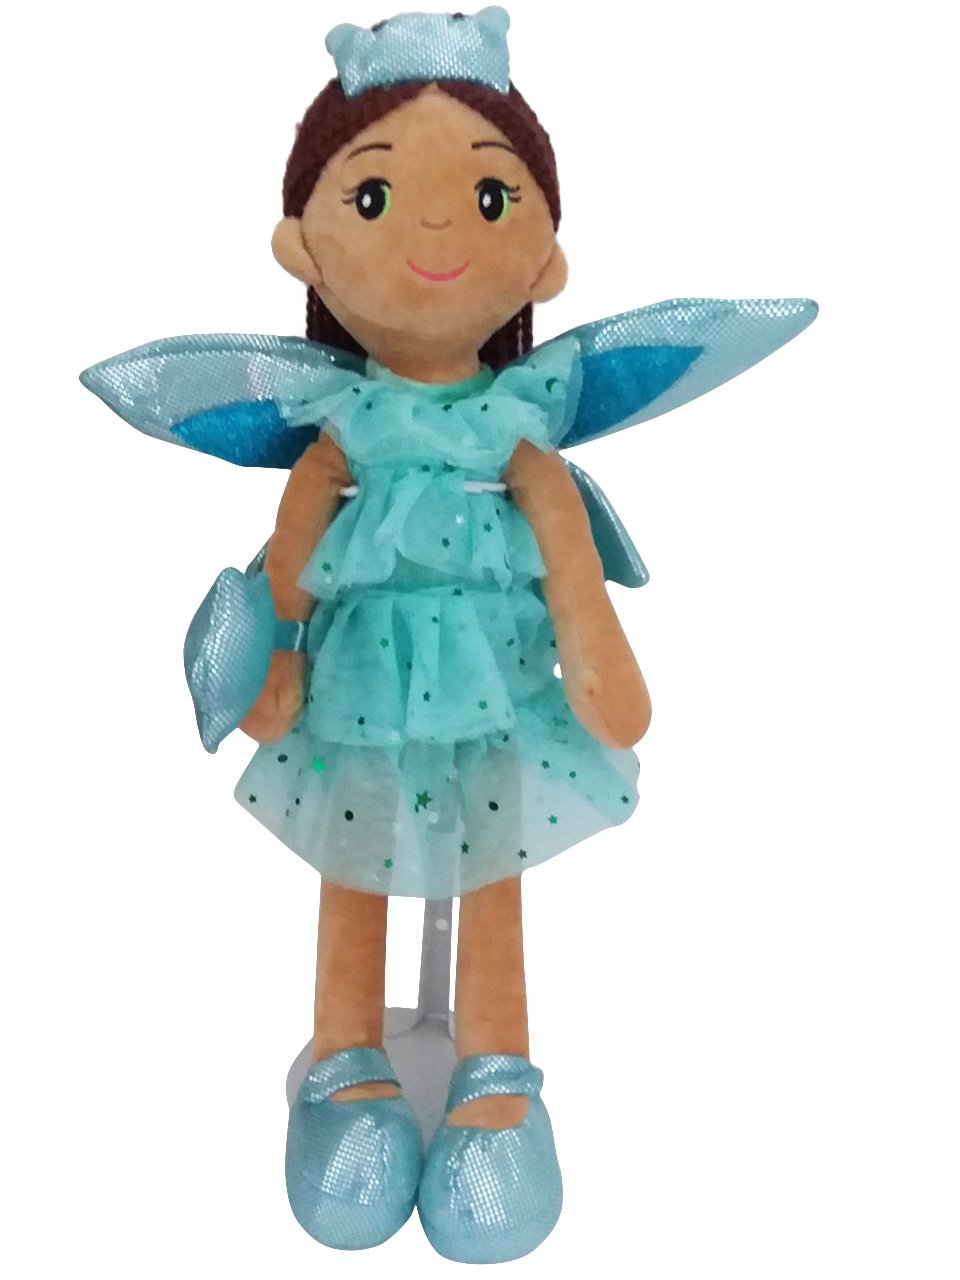 Maria Fairy Princess Soft Baby Doll